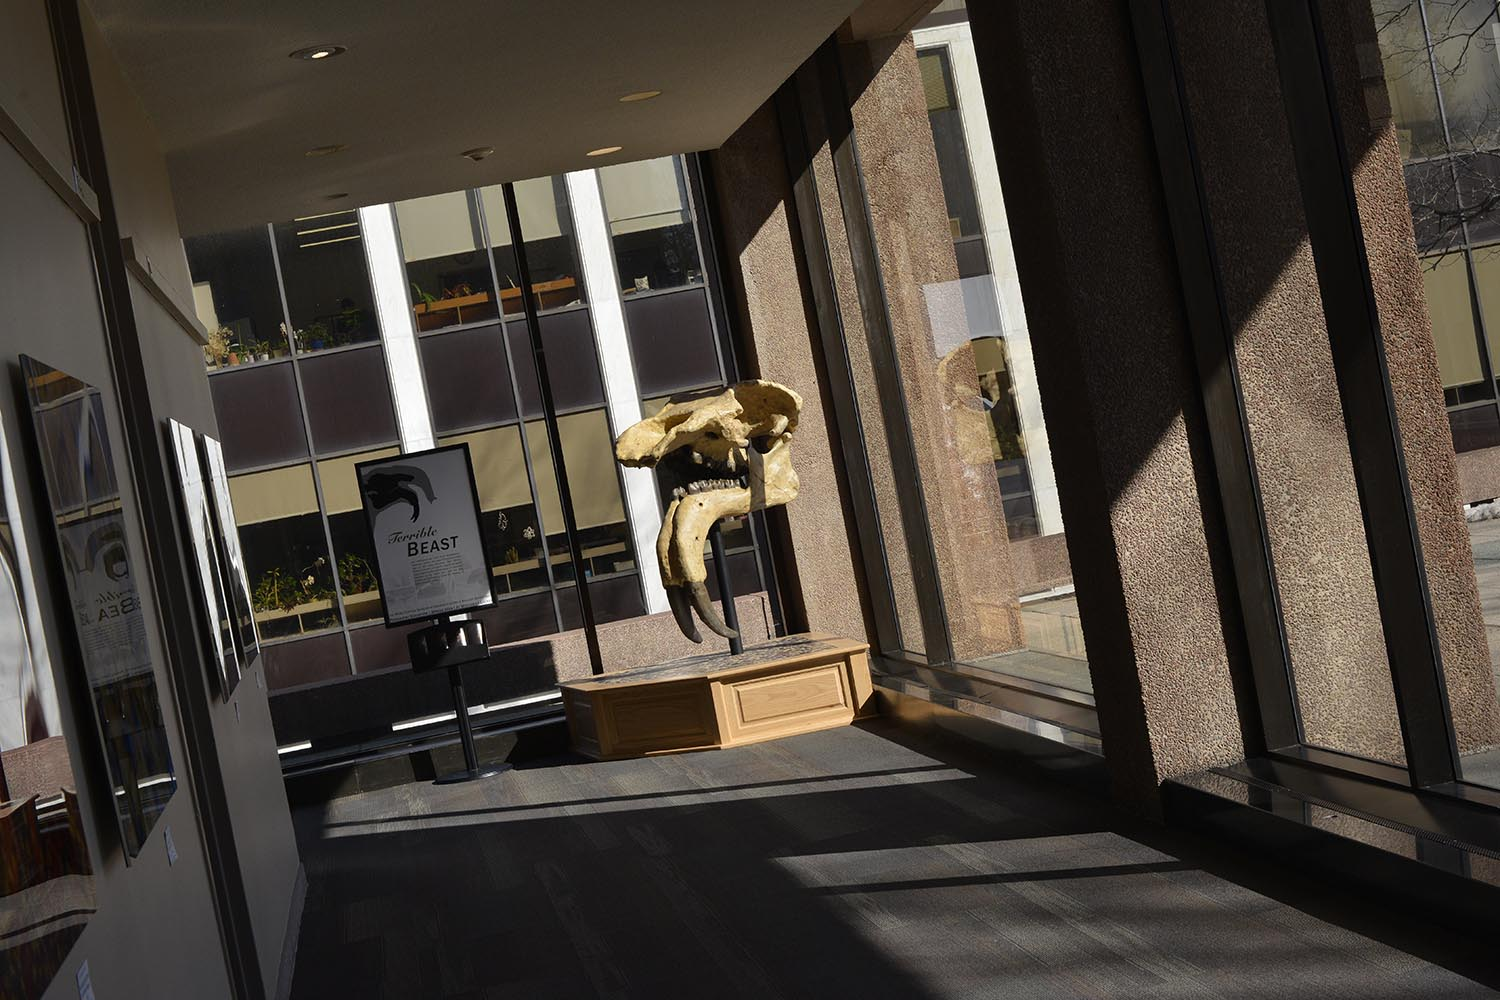 Exley Science Center is now home to its second prehistoric specimen—a massive land animal known as aDeinotheriumgiganteum. This elephant-lookalike would have weighed up to 20,000 pounds and would use their massive tusks forstripping bark from tree trunks for eating and for dominating fellow males during mating season.